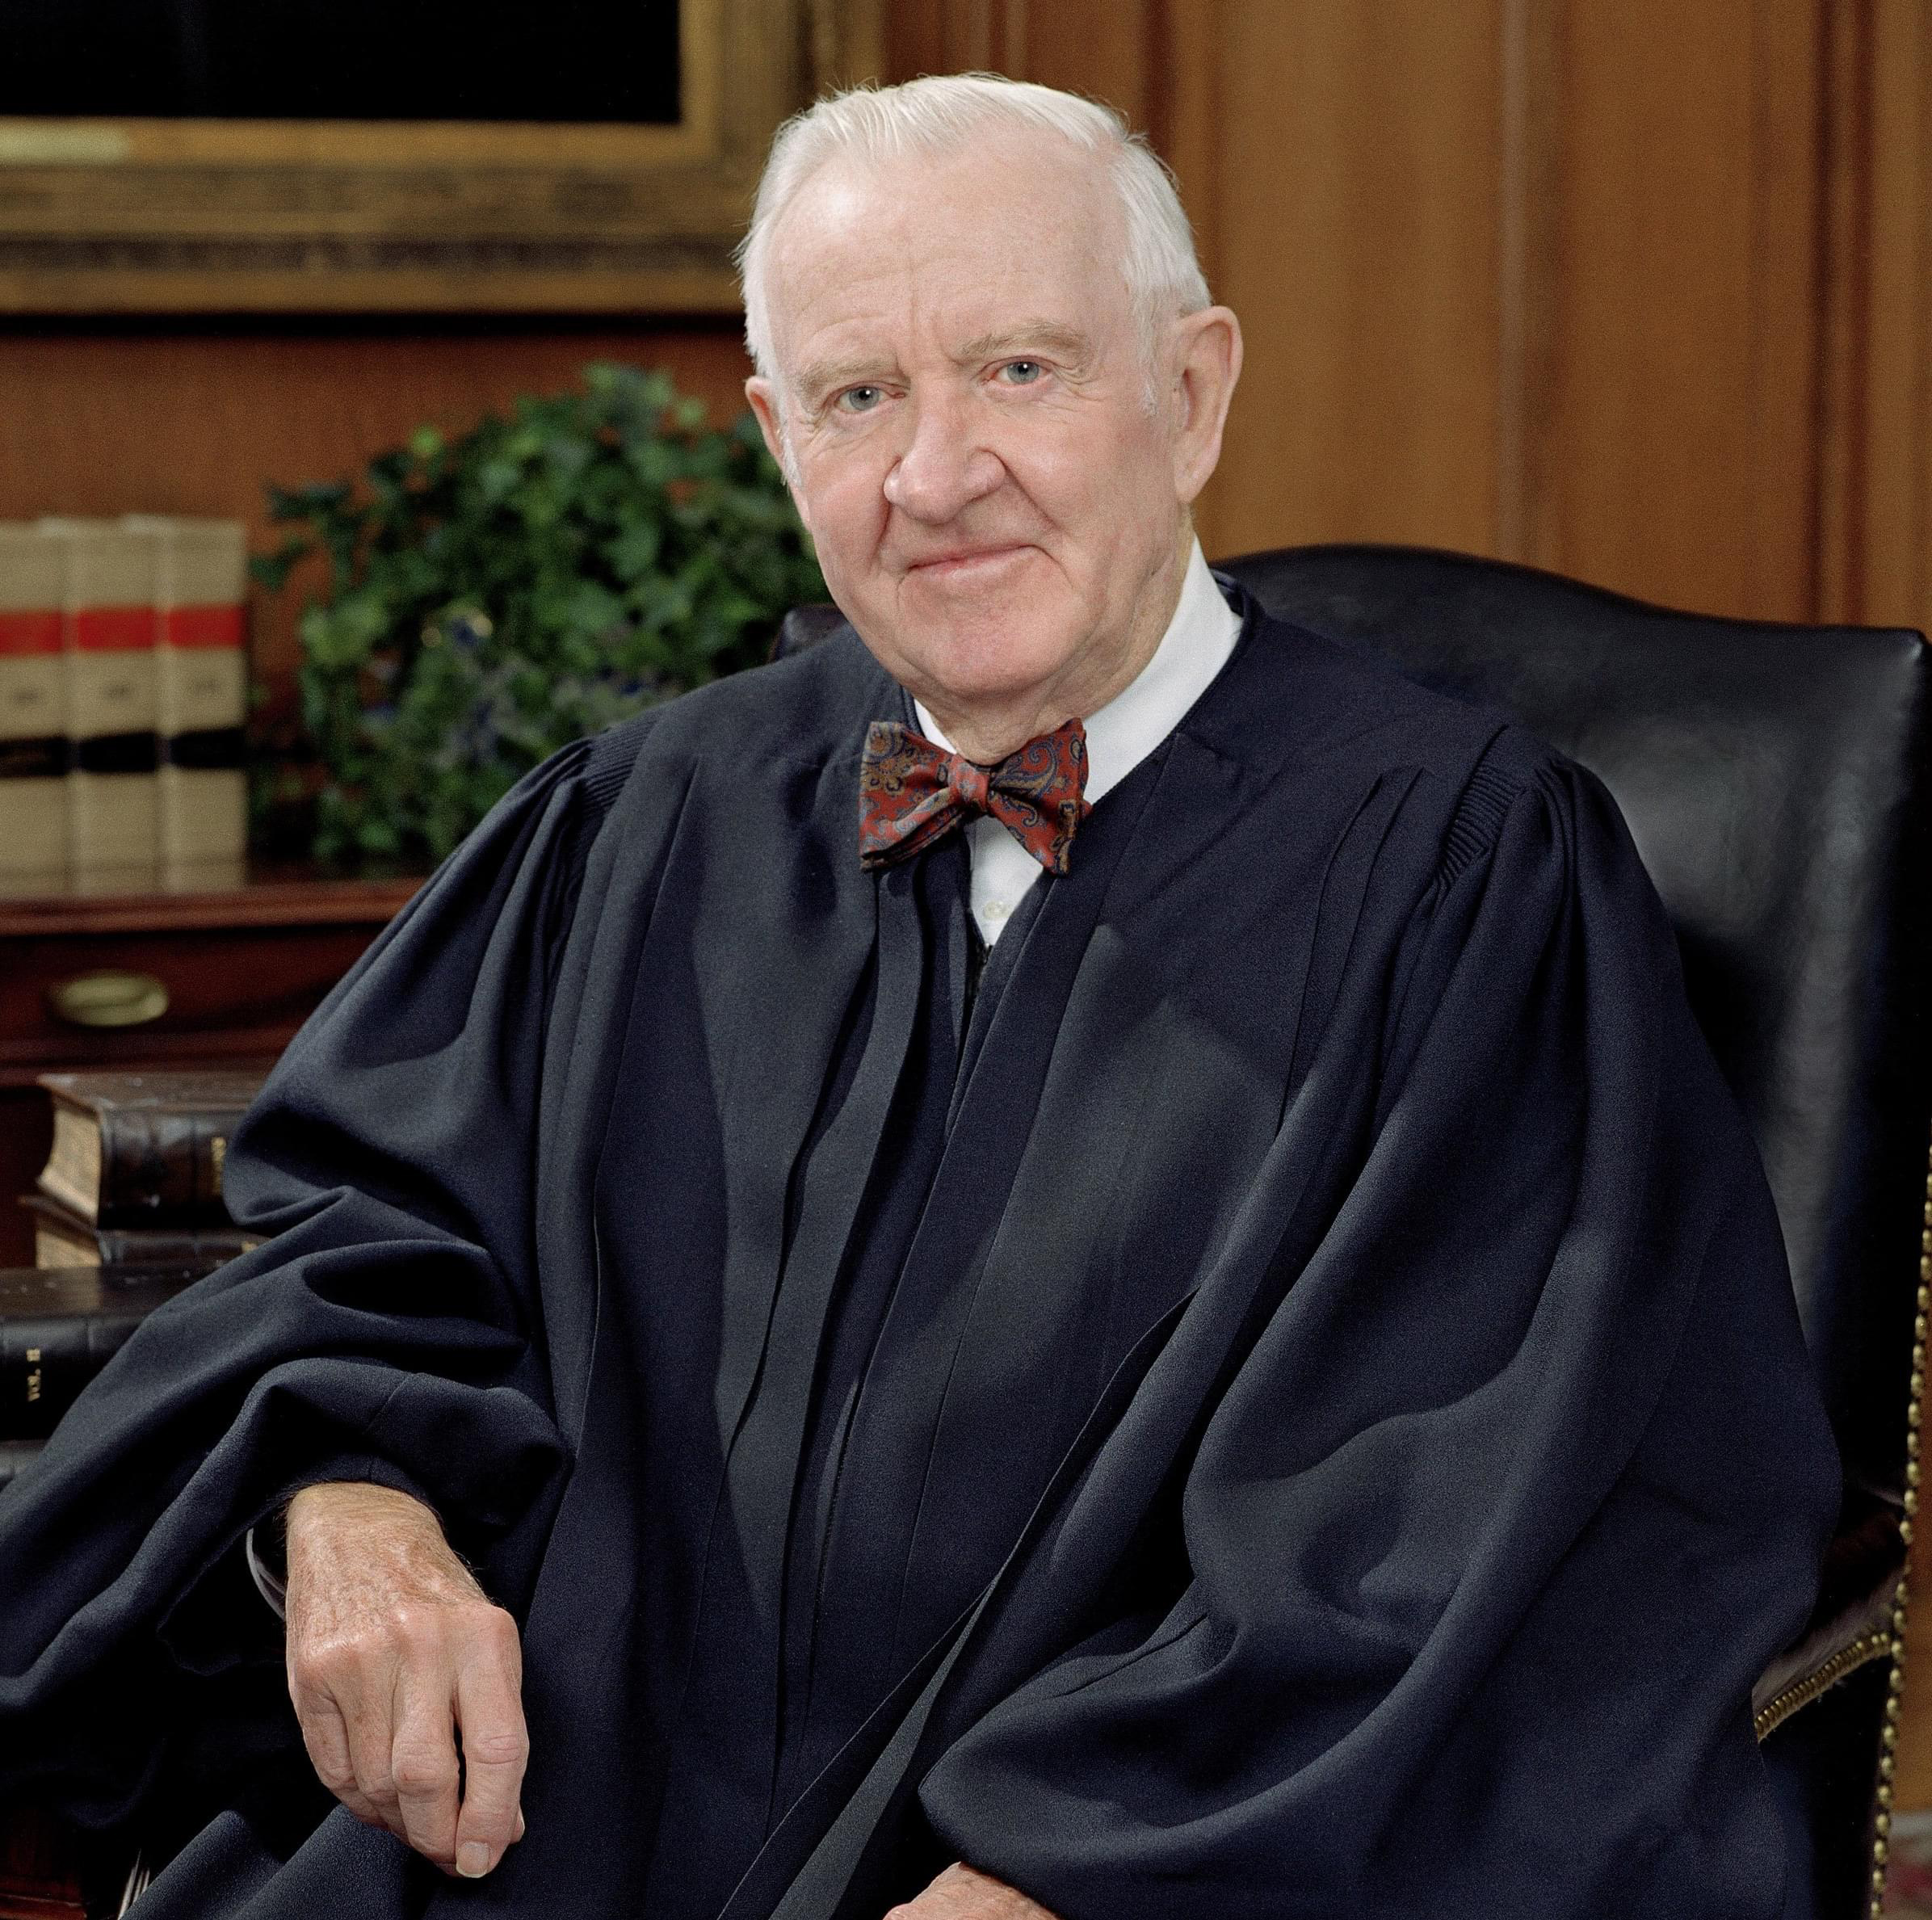 Retired Justice Stevens dies at 99